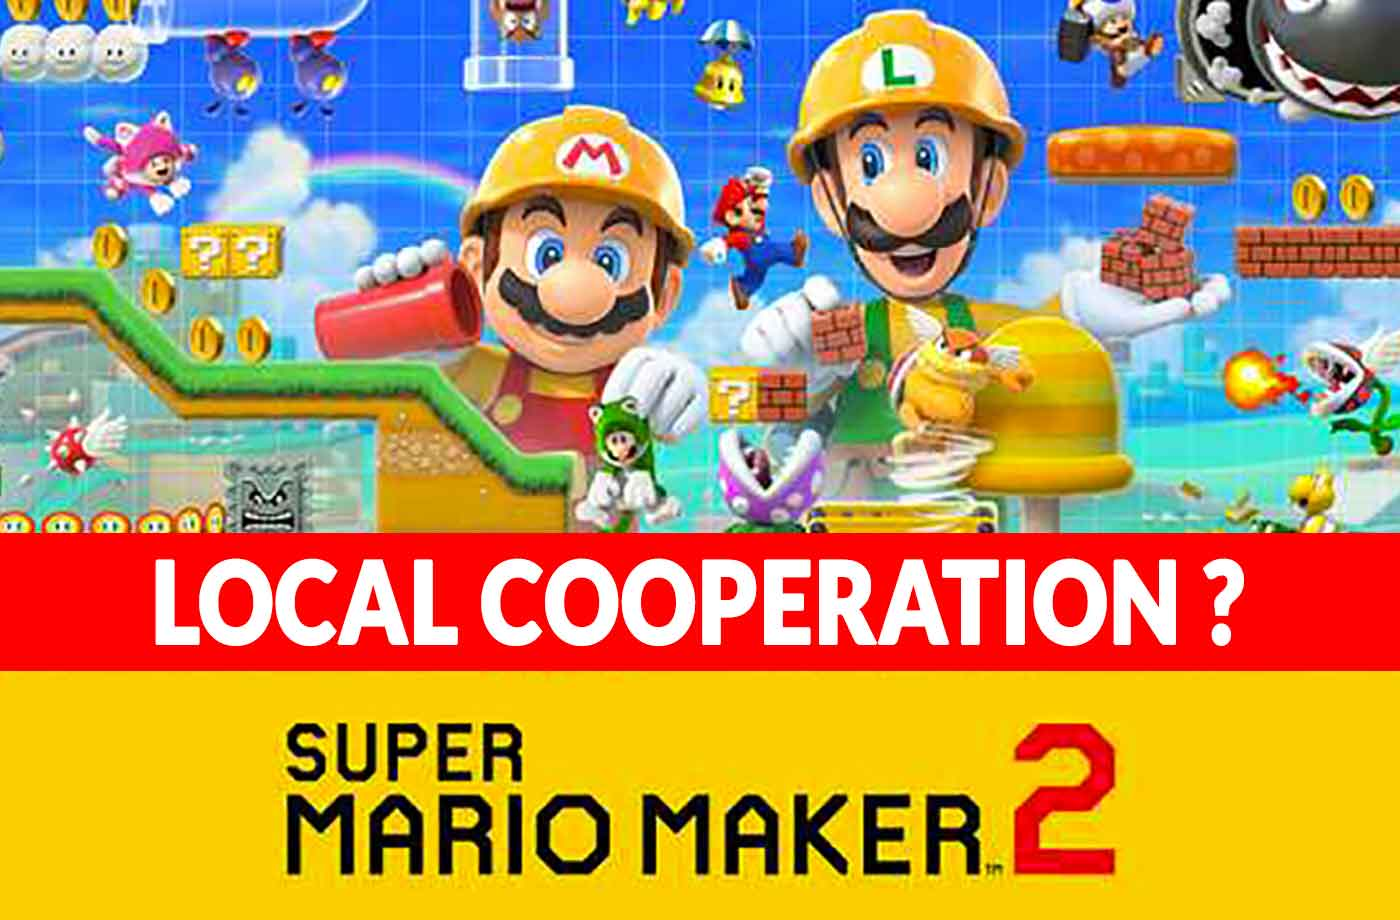 Is it possible to play Super Mario Maker 2 in local